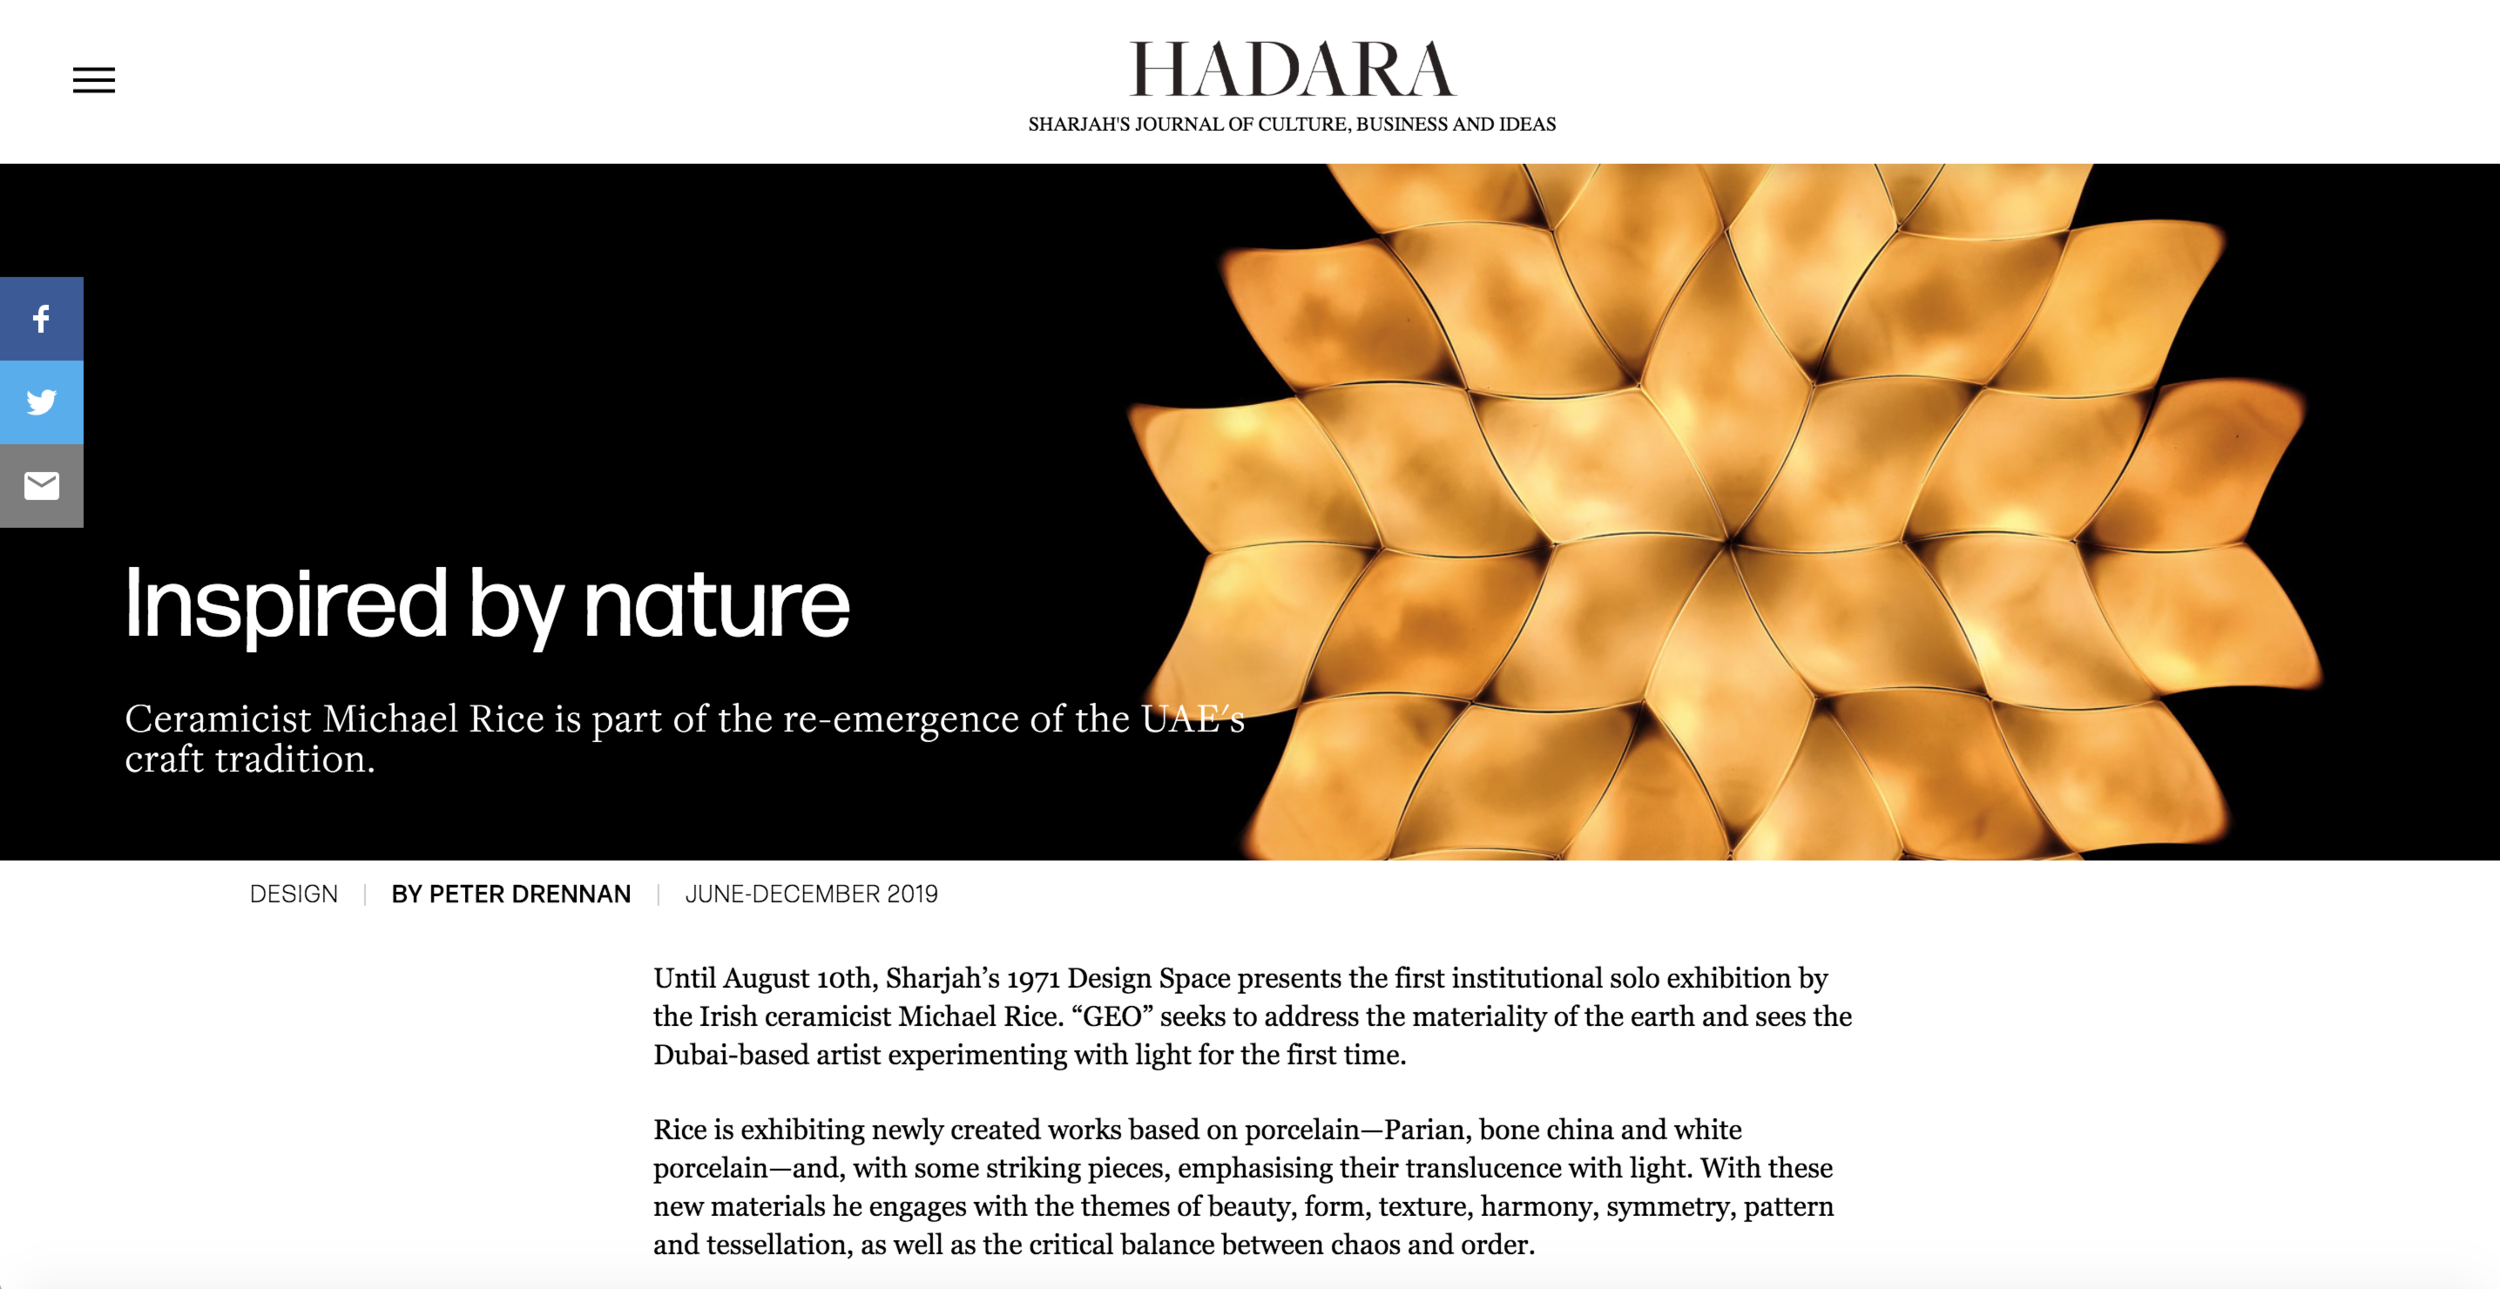 """Featured in the inaugural edition of """"Hadara"""" - SHARJAH'S JOURNAL OF CULTURE, BUSINESS AND IDEAS   https://hadaramagazine.com/june2019/michael-rice/"""